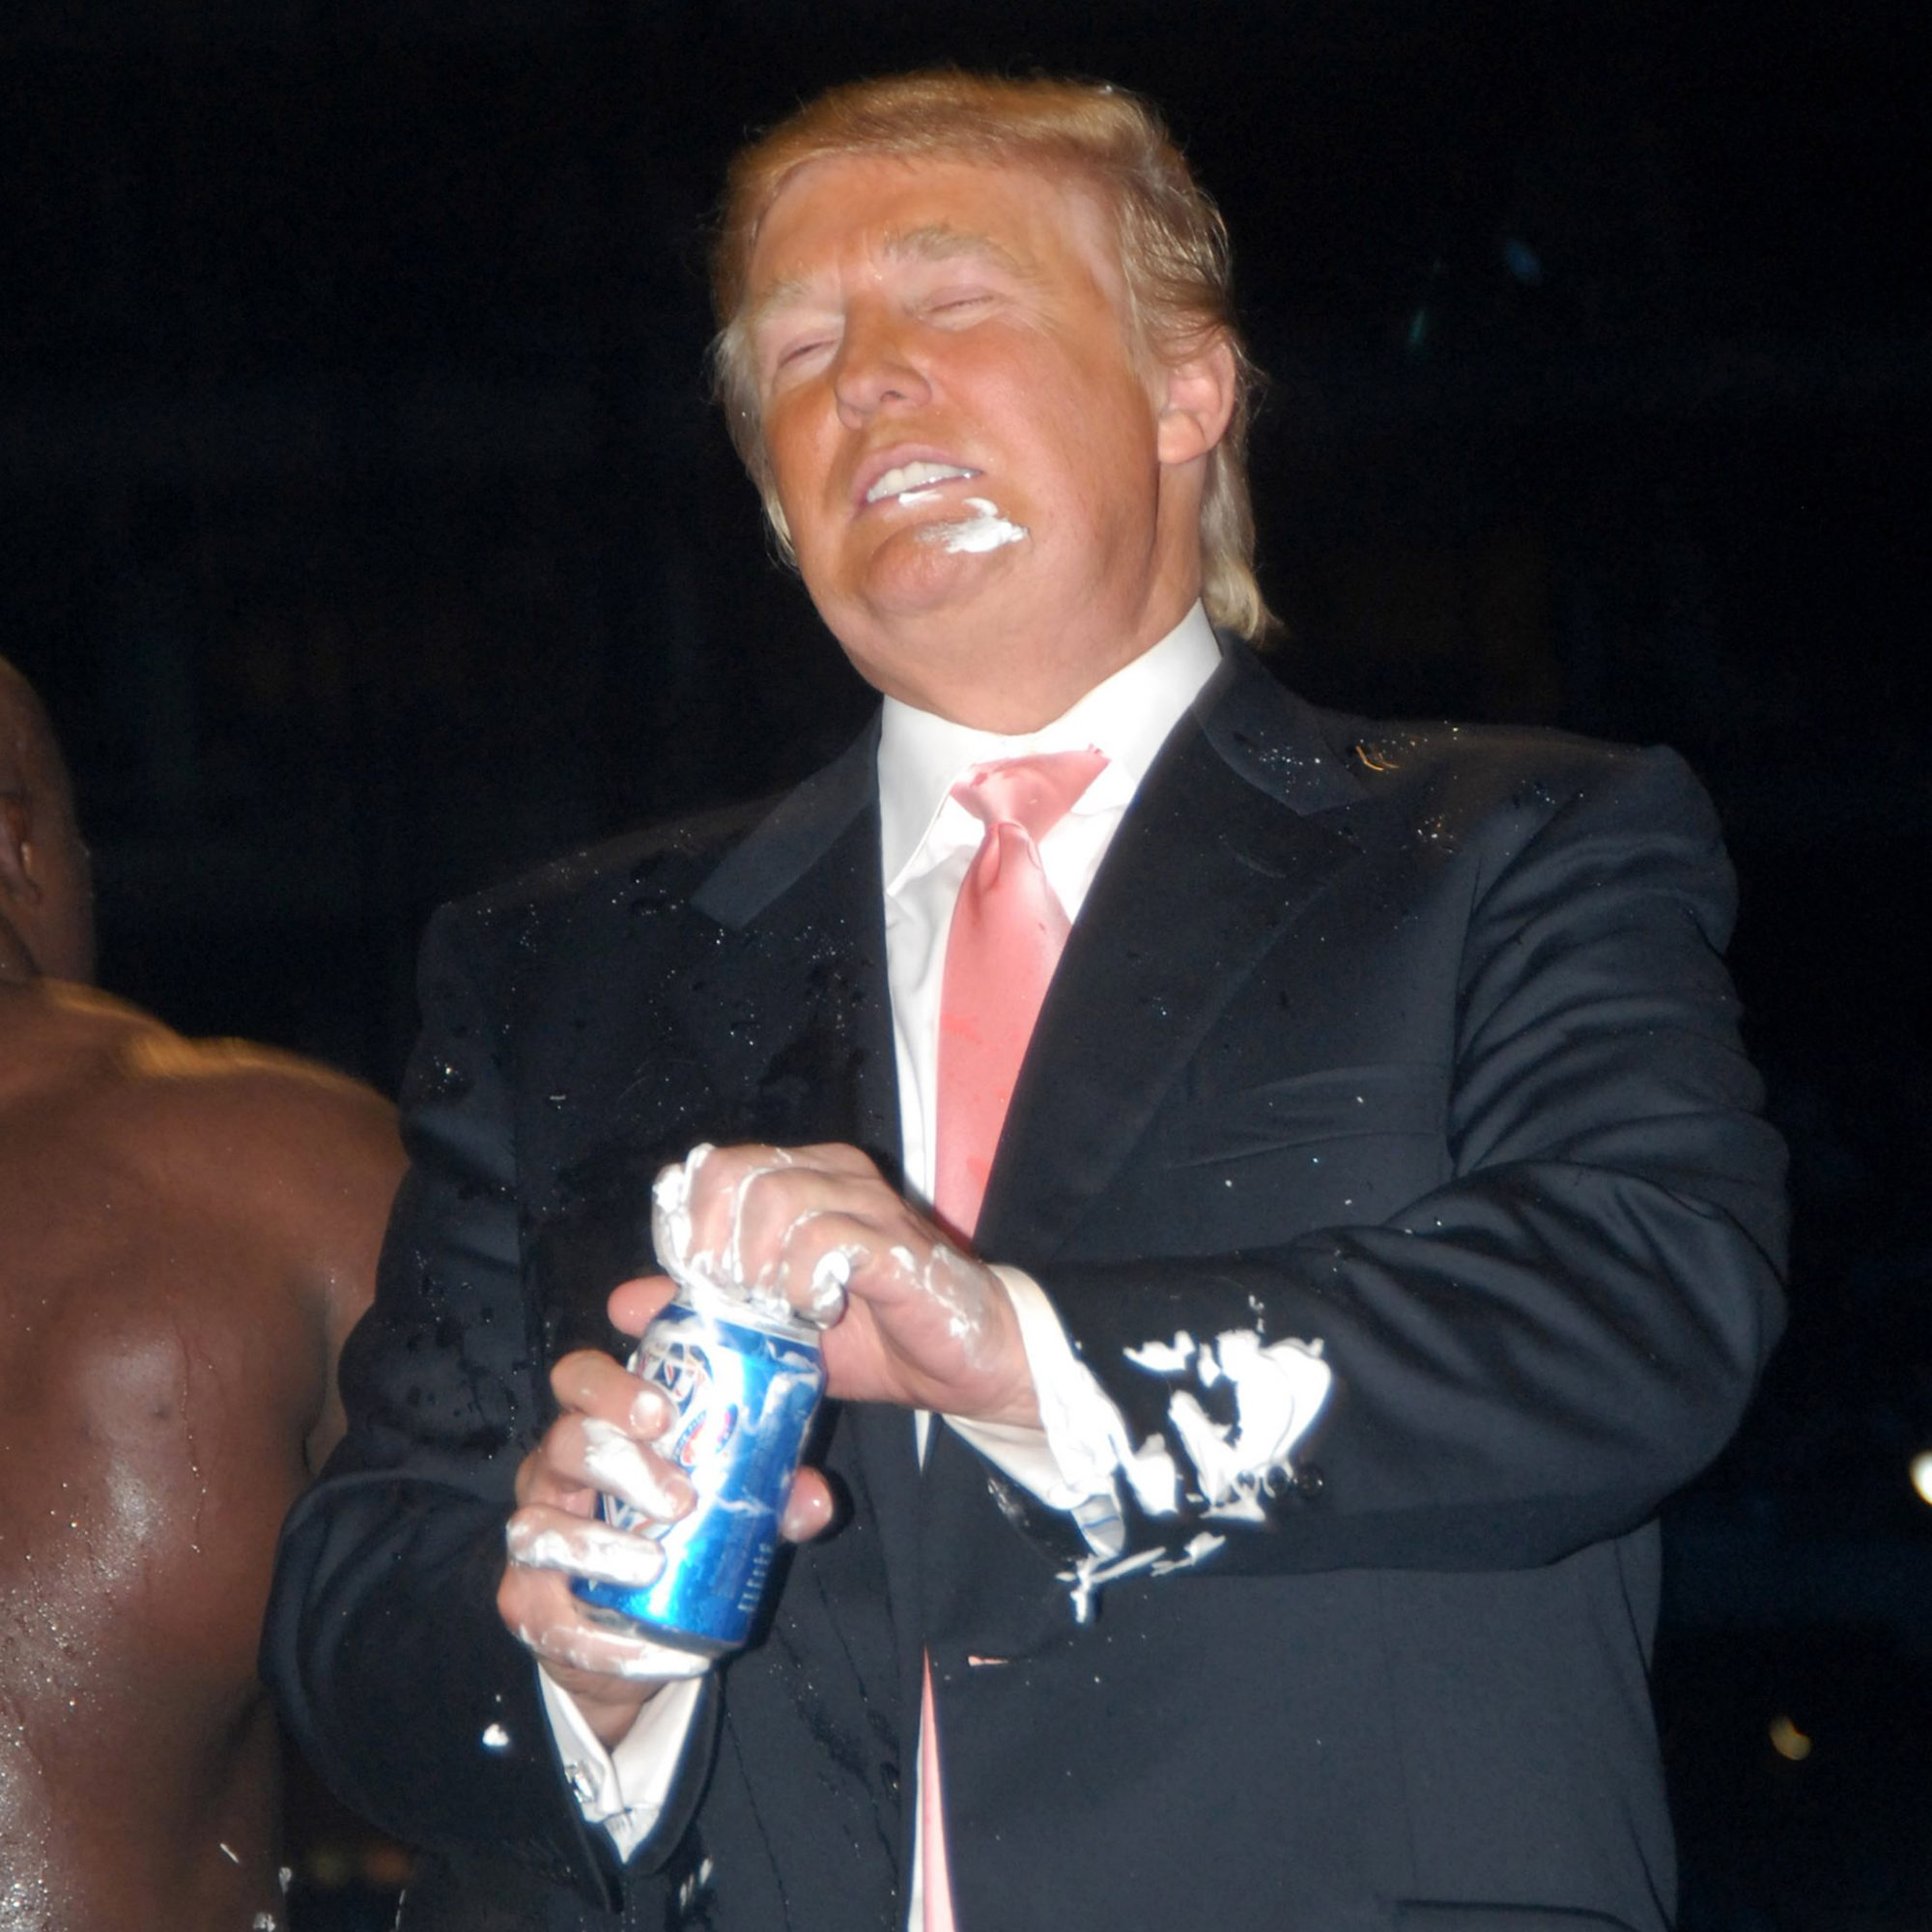 TRUMP AND BEER FWX